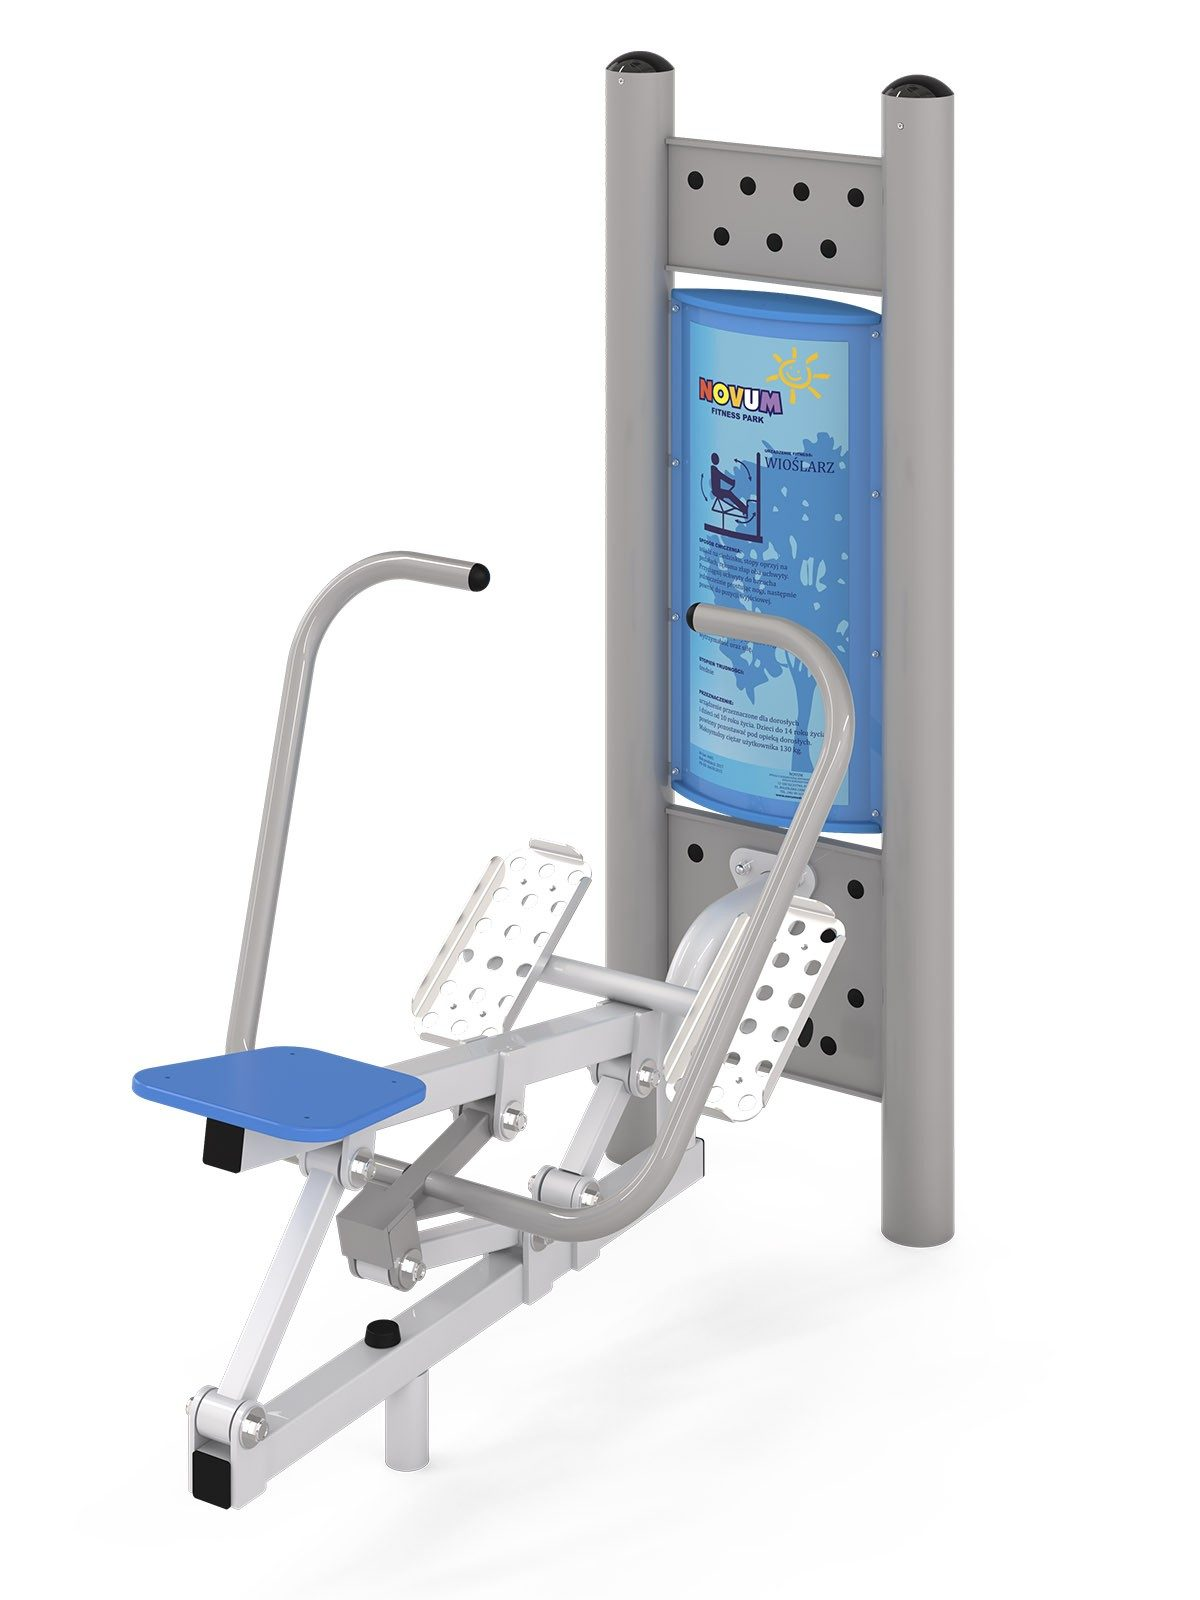 Doppel-Fitness-Station Rudermaschine 4405